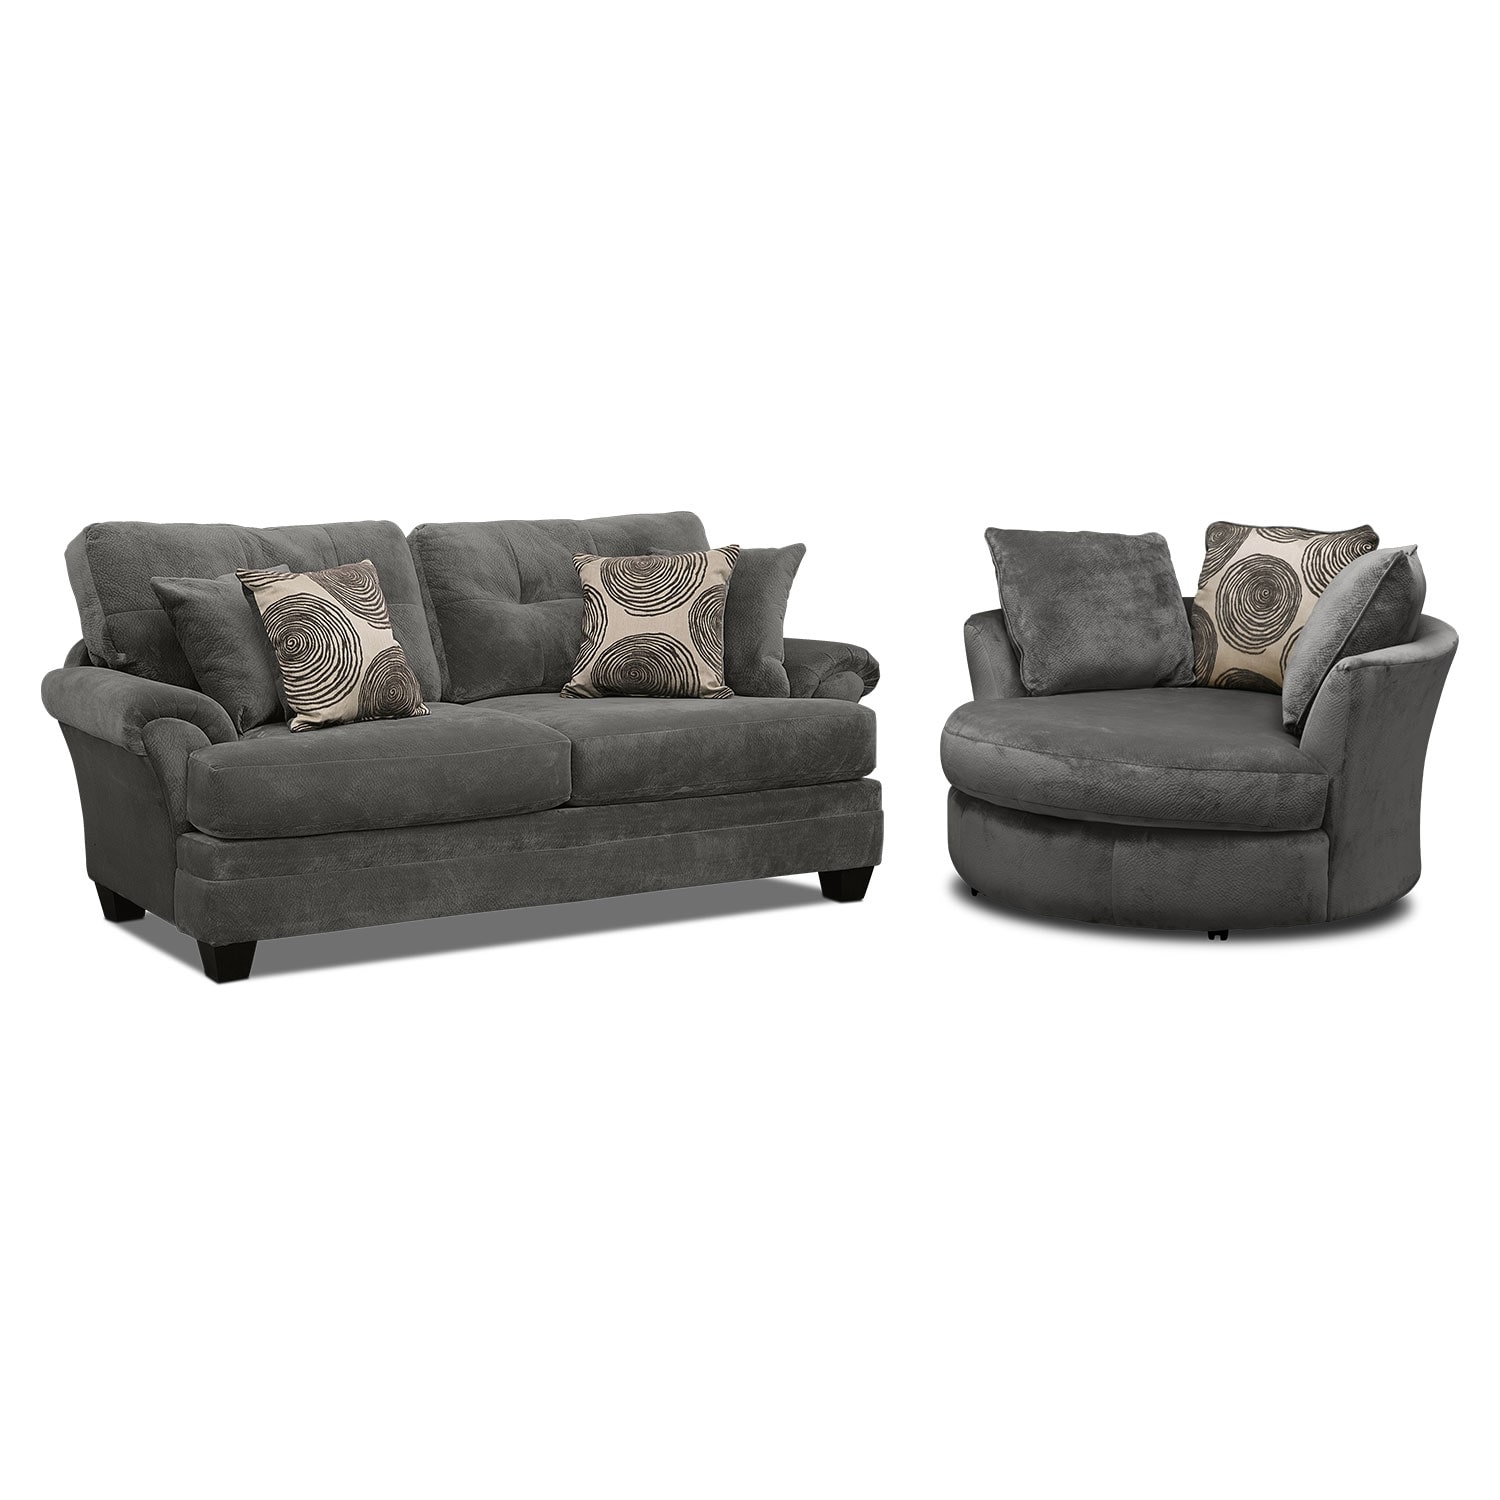 Cordelle Sofa and Swivel Chair Set - Gray